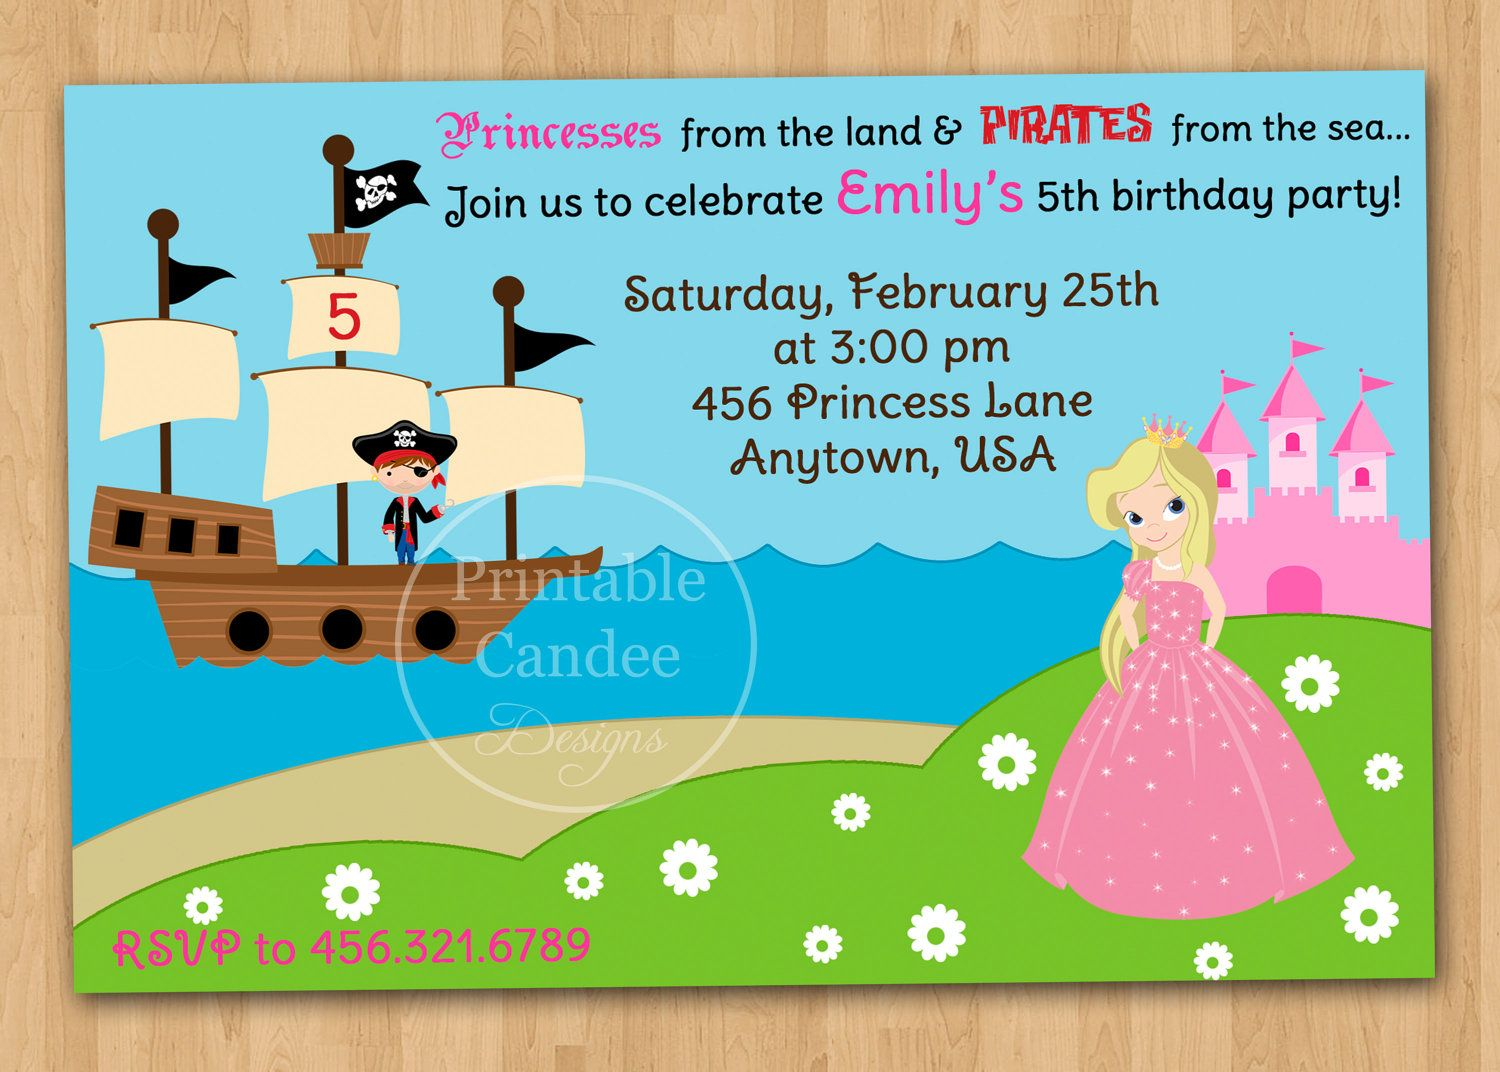 pirate birthday party invitation template free ; 13562dc72bbce3c4c19c203941702e17